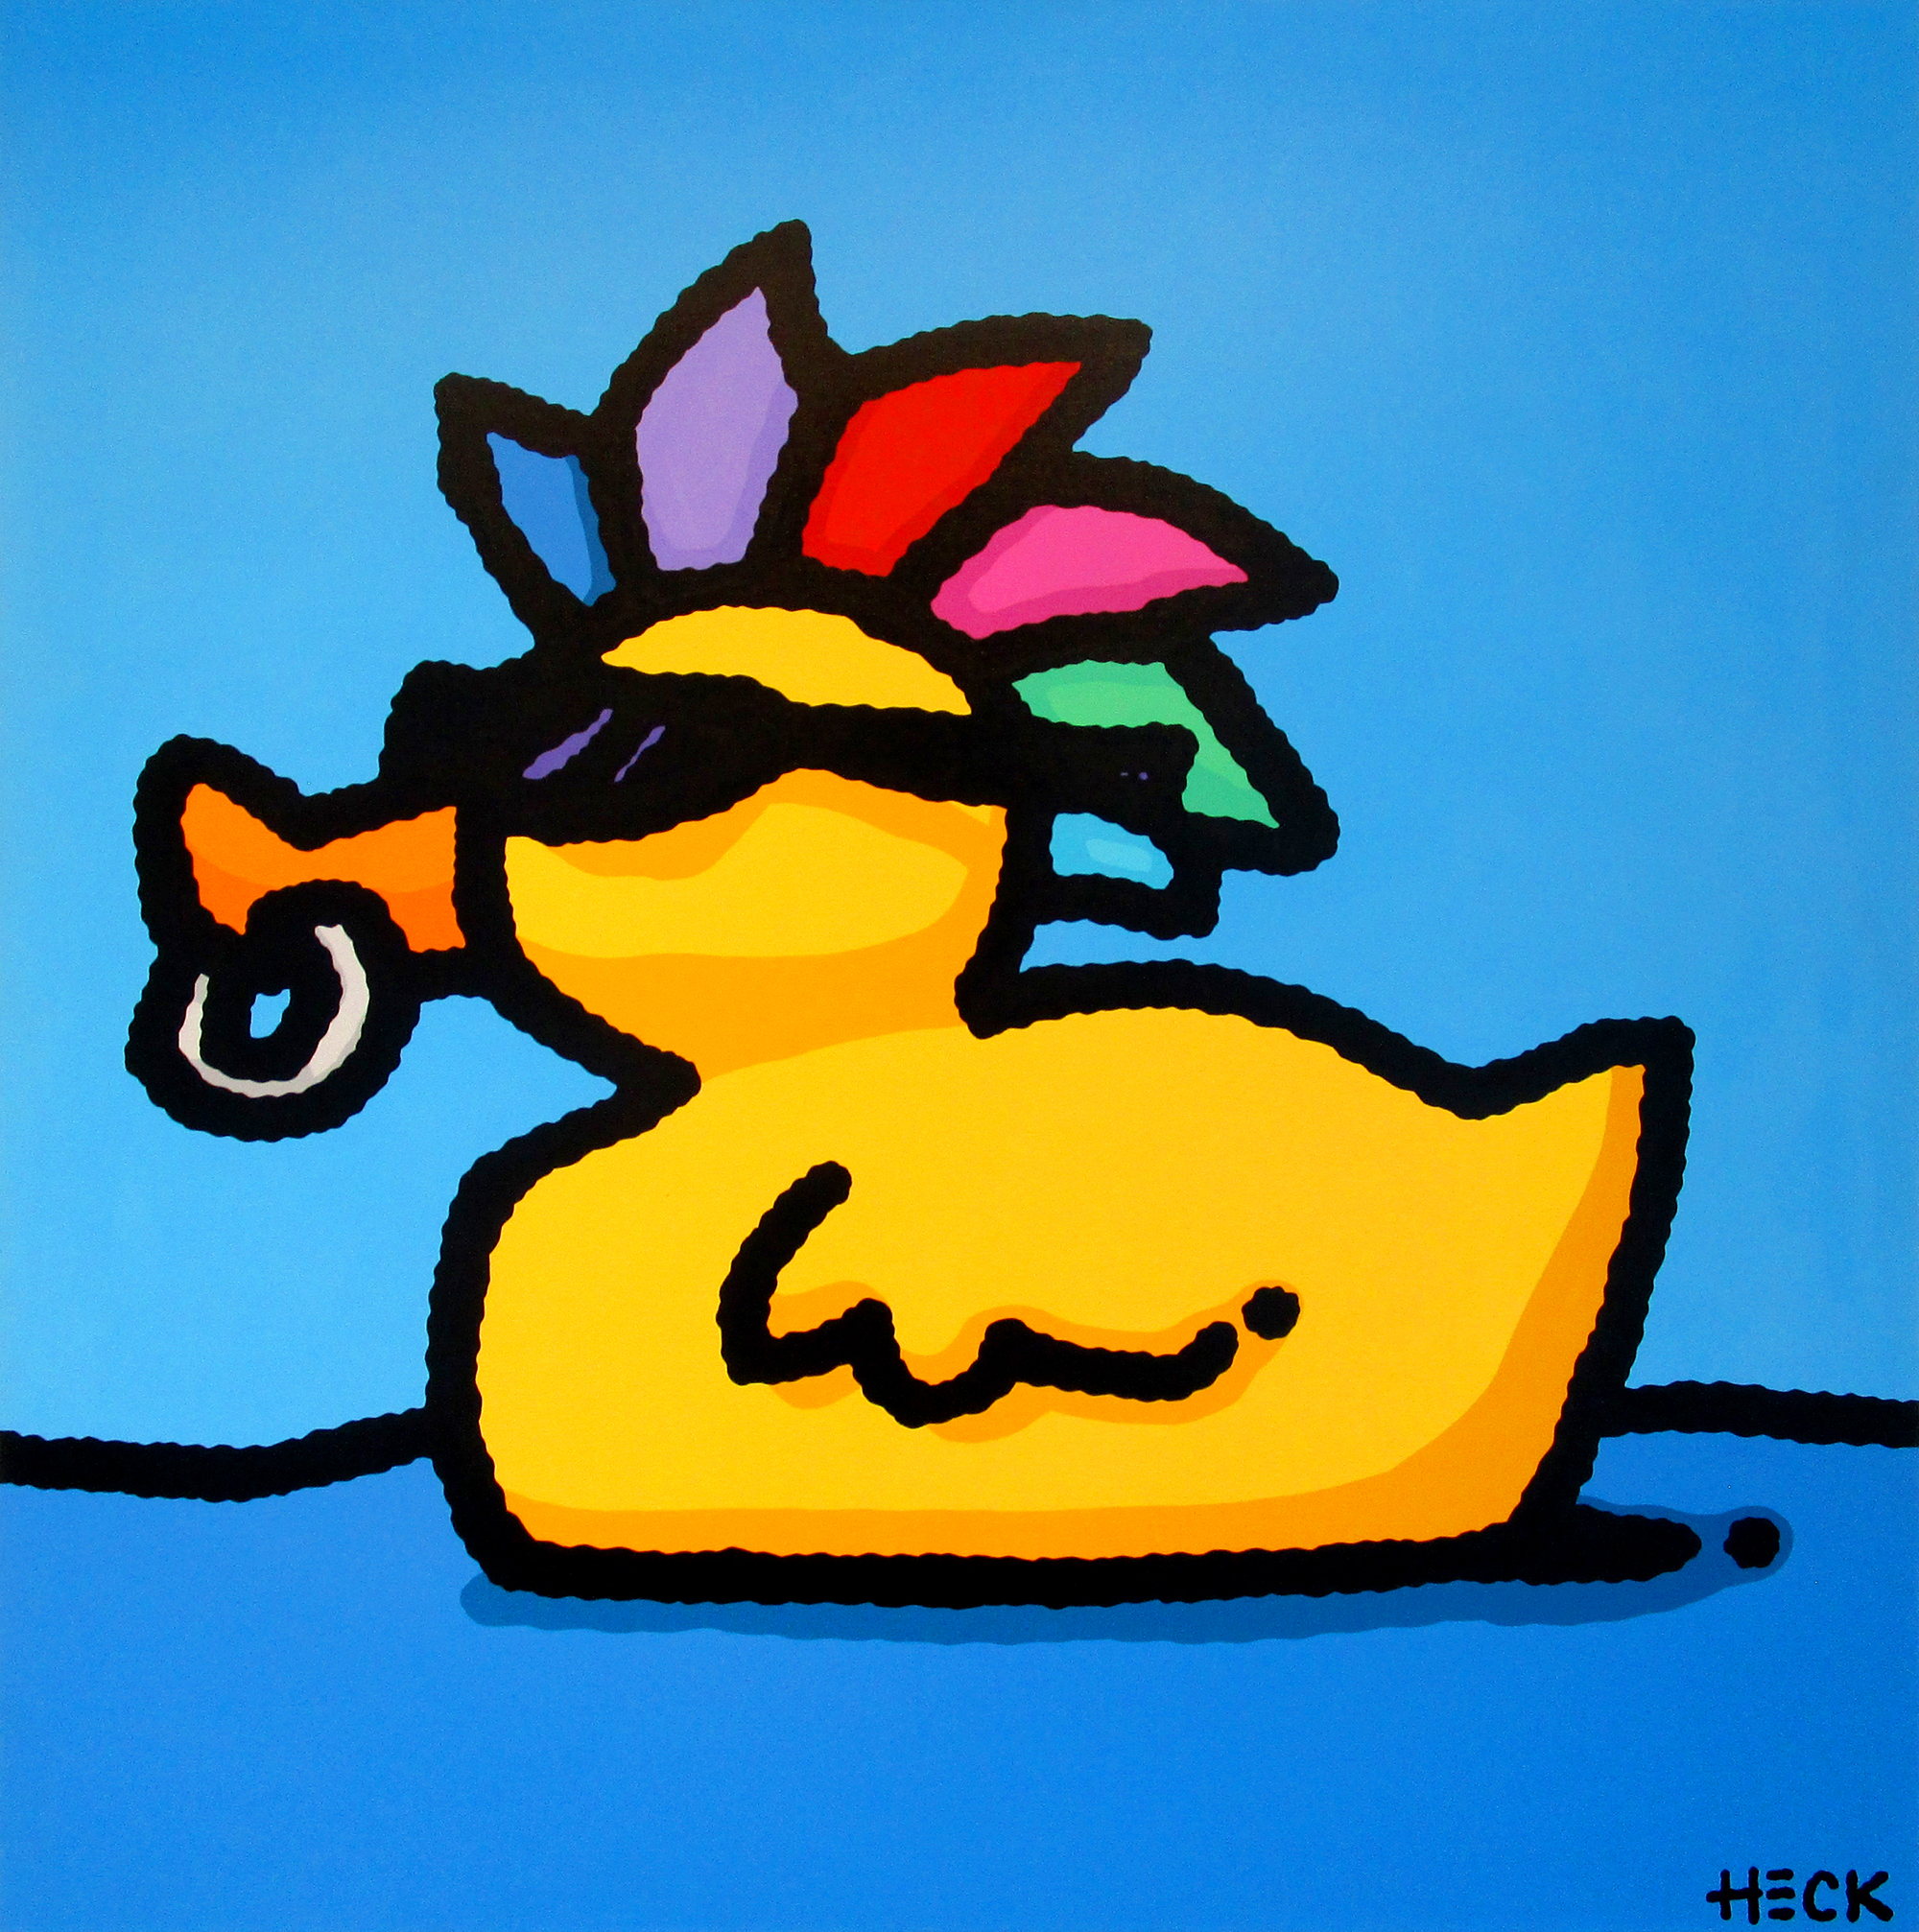 Ed Heck - Duck gone Wild , 6575-006-447